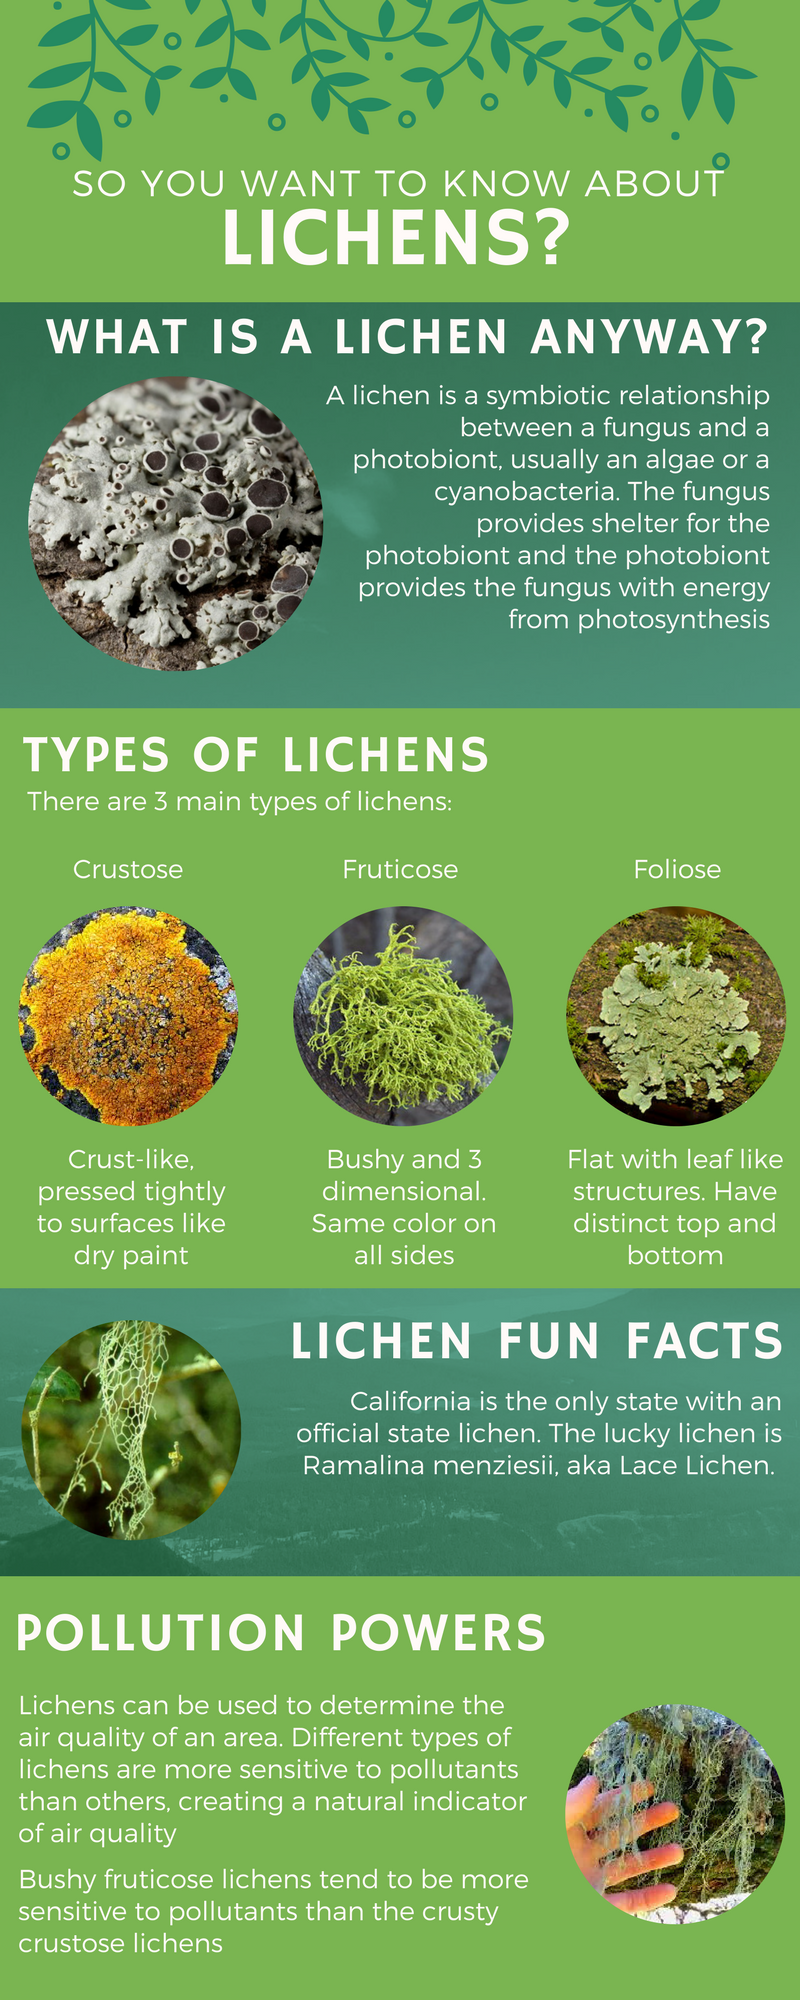 So you want to know about lichens